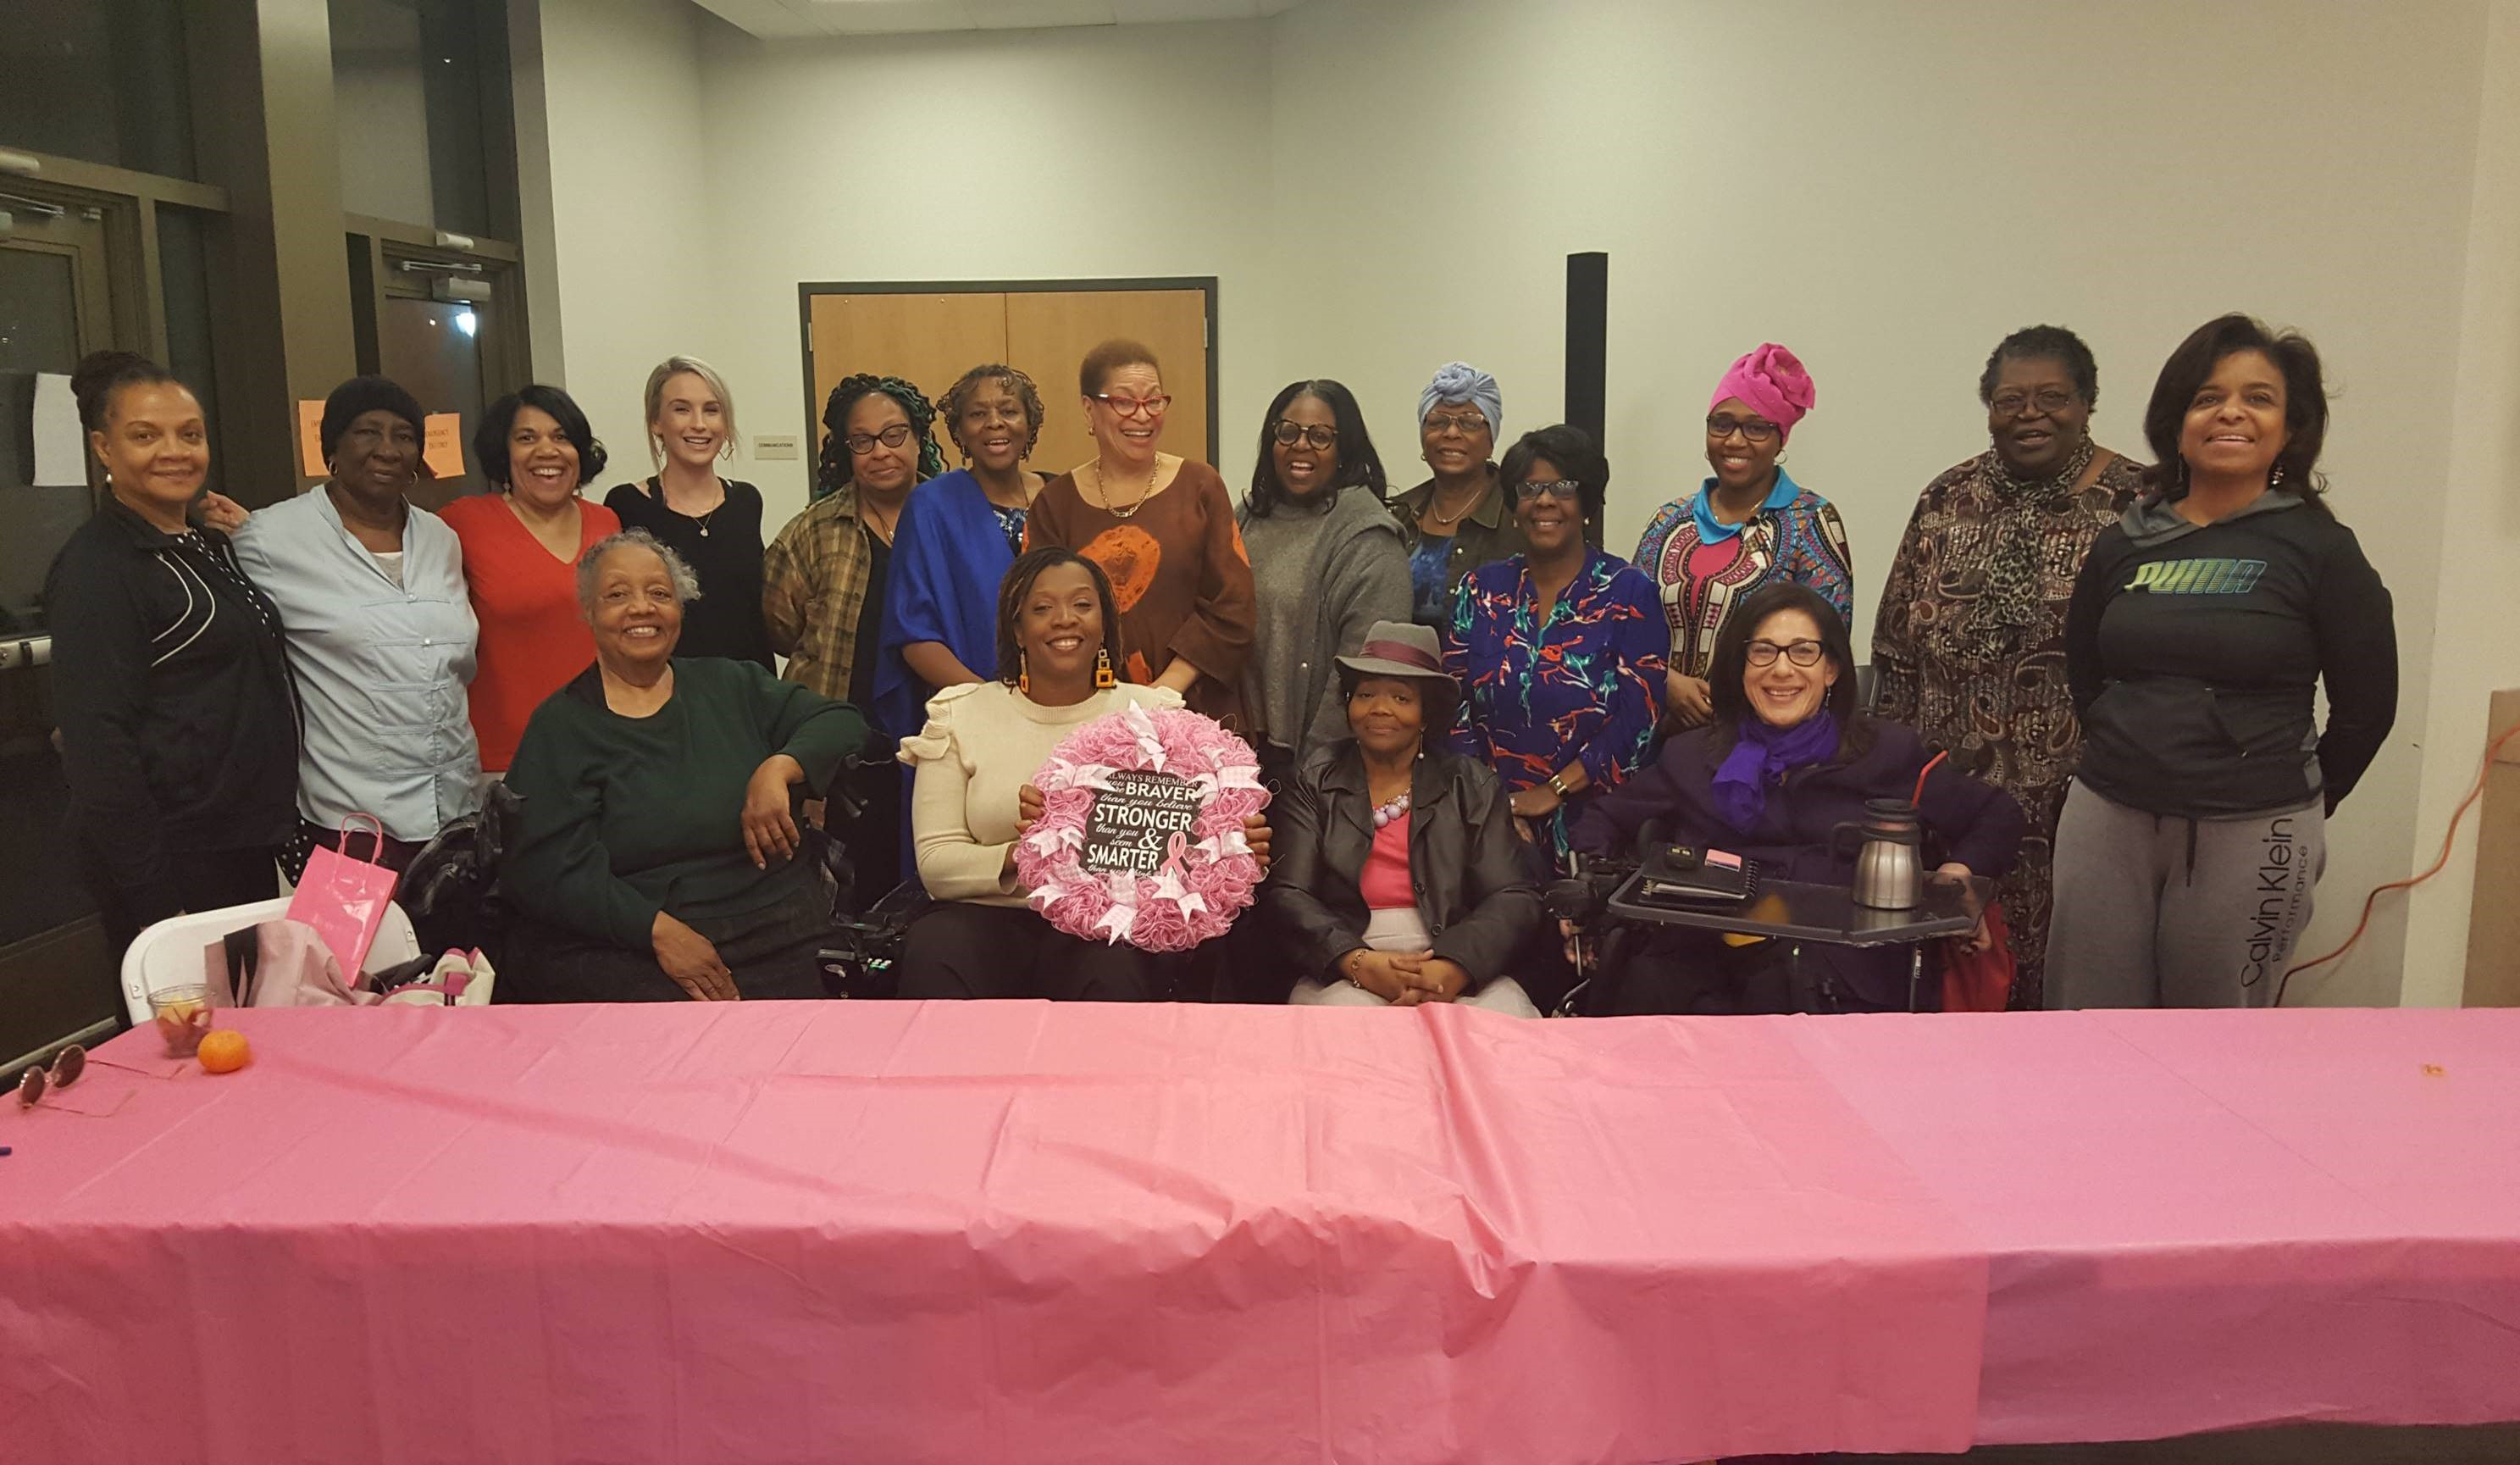 ": Group photo at the Thelma D. Jones Breast Cancer Fund Support Group Celebration of Women's History Month (Thelma, back row Middle with Blue Scarf on Her Shoulder) with guest Speaker Dr. Julianne Malveaux! (sic, back row middle with orange and brown outfit) who spoke about the ""Economics of Breast Cancer,"" 3-19."